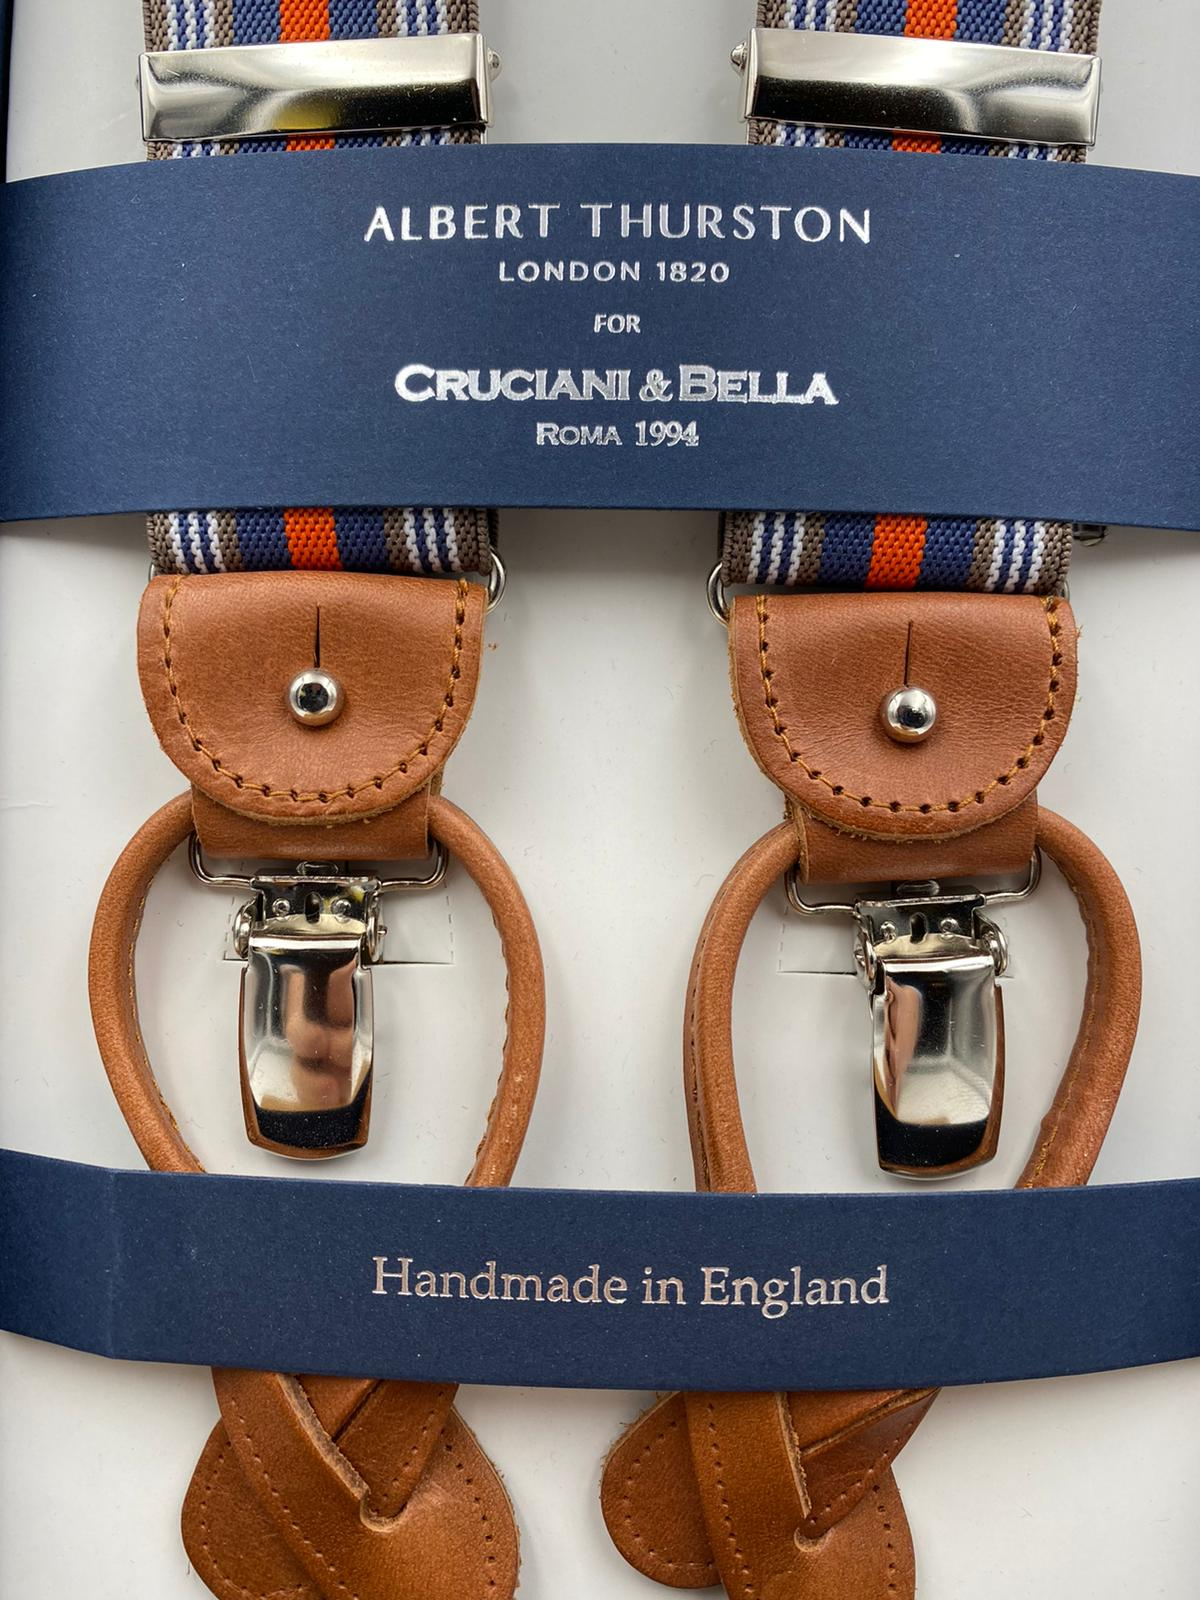 Albert Thurston for Cruciani & Bella Made in England 2 in 1 Adjustable Sizing 35 mm elastic braces Light Brown, Orange and Blue Stripes Y-Shaped Nickel Fittings #4874